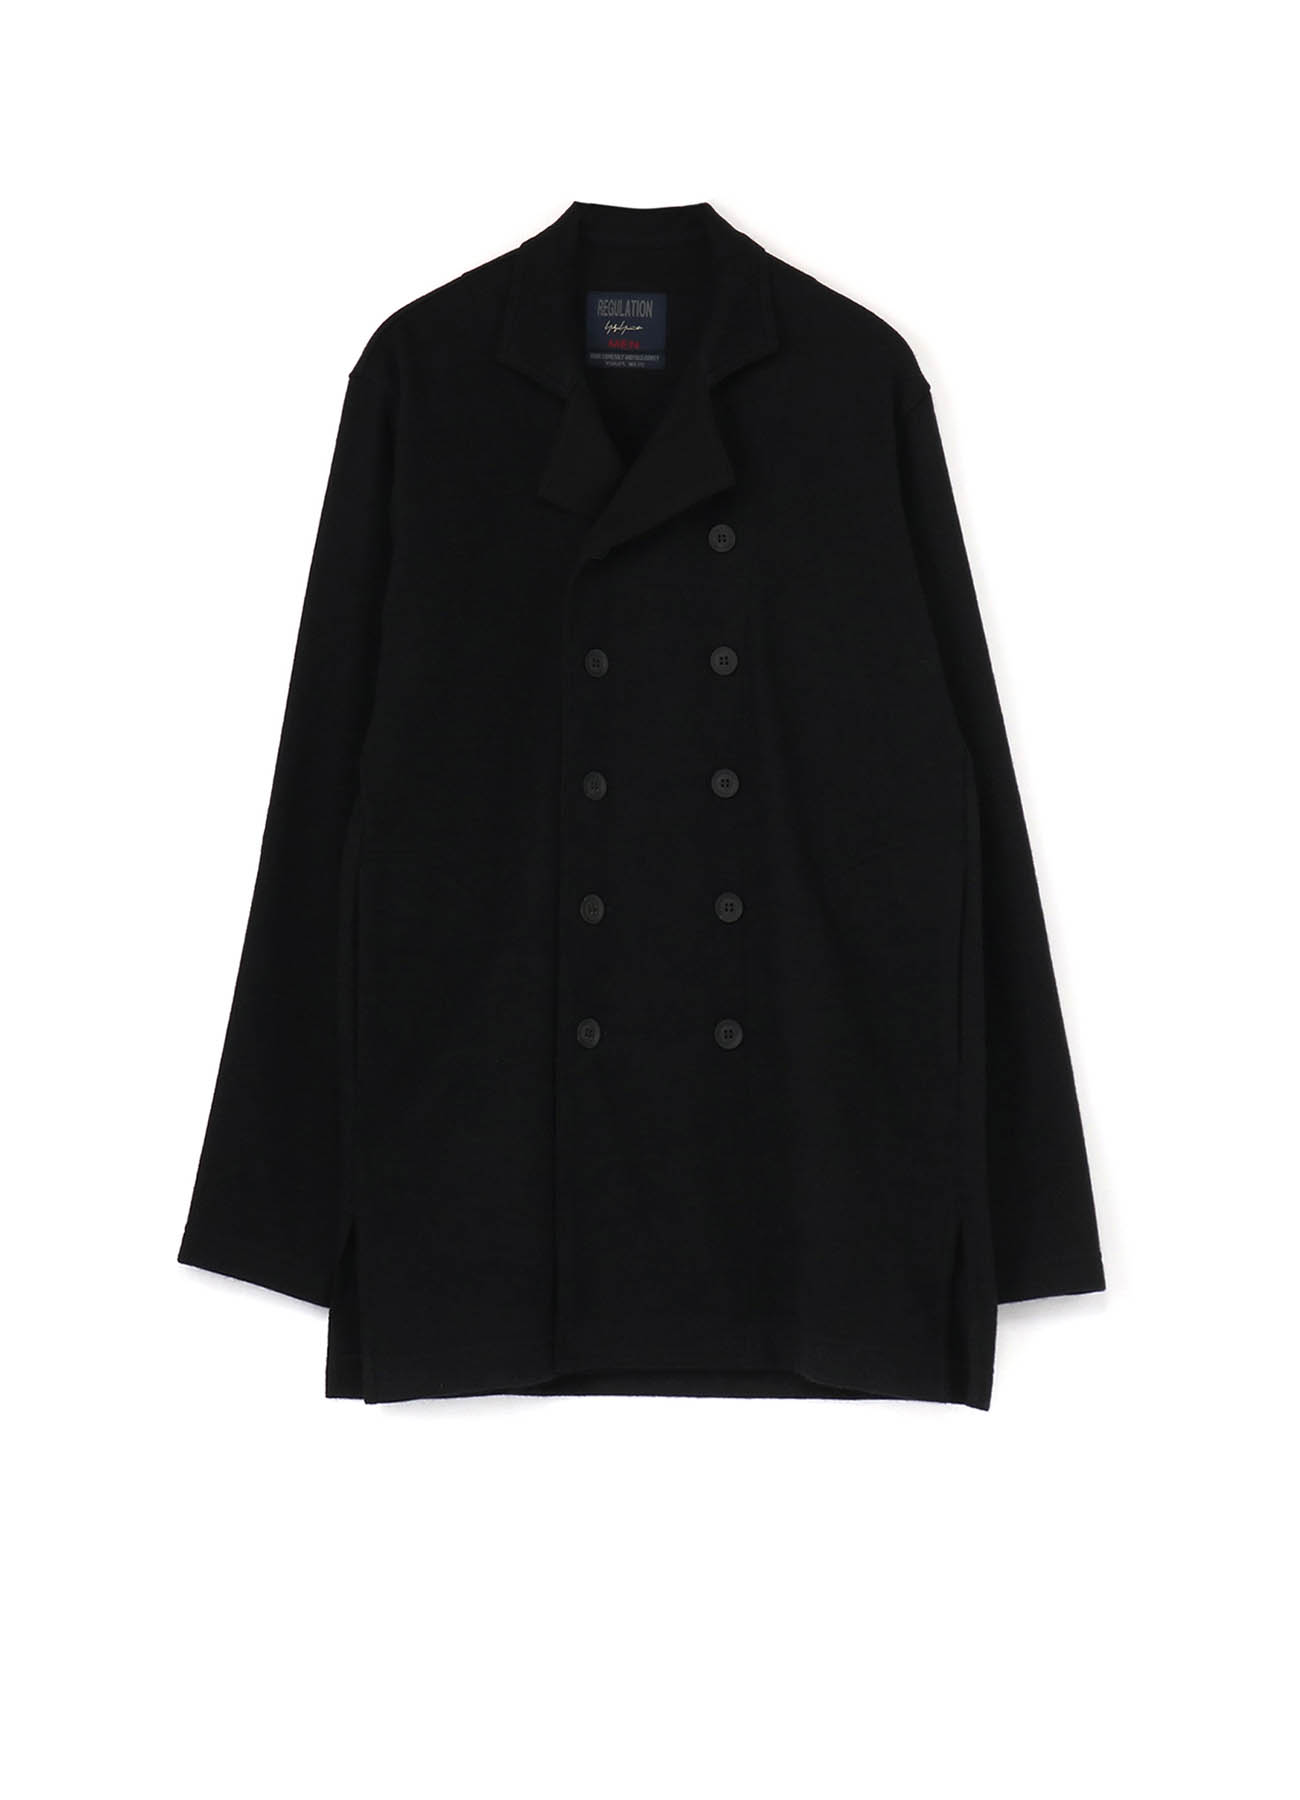 REGULATION SPECIAL SOFT CARDING WOOL PS DOUBLE JACKET